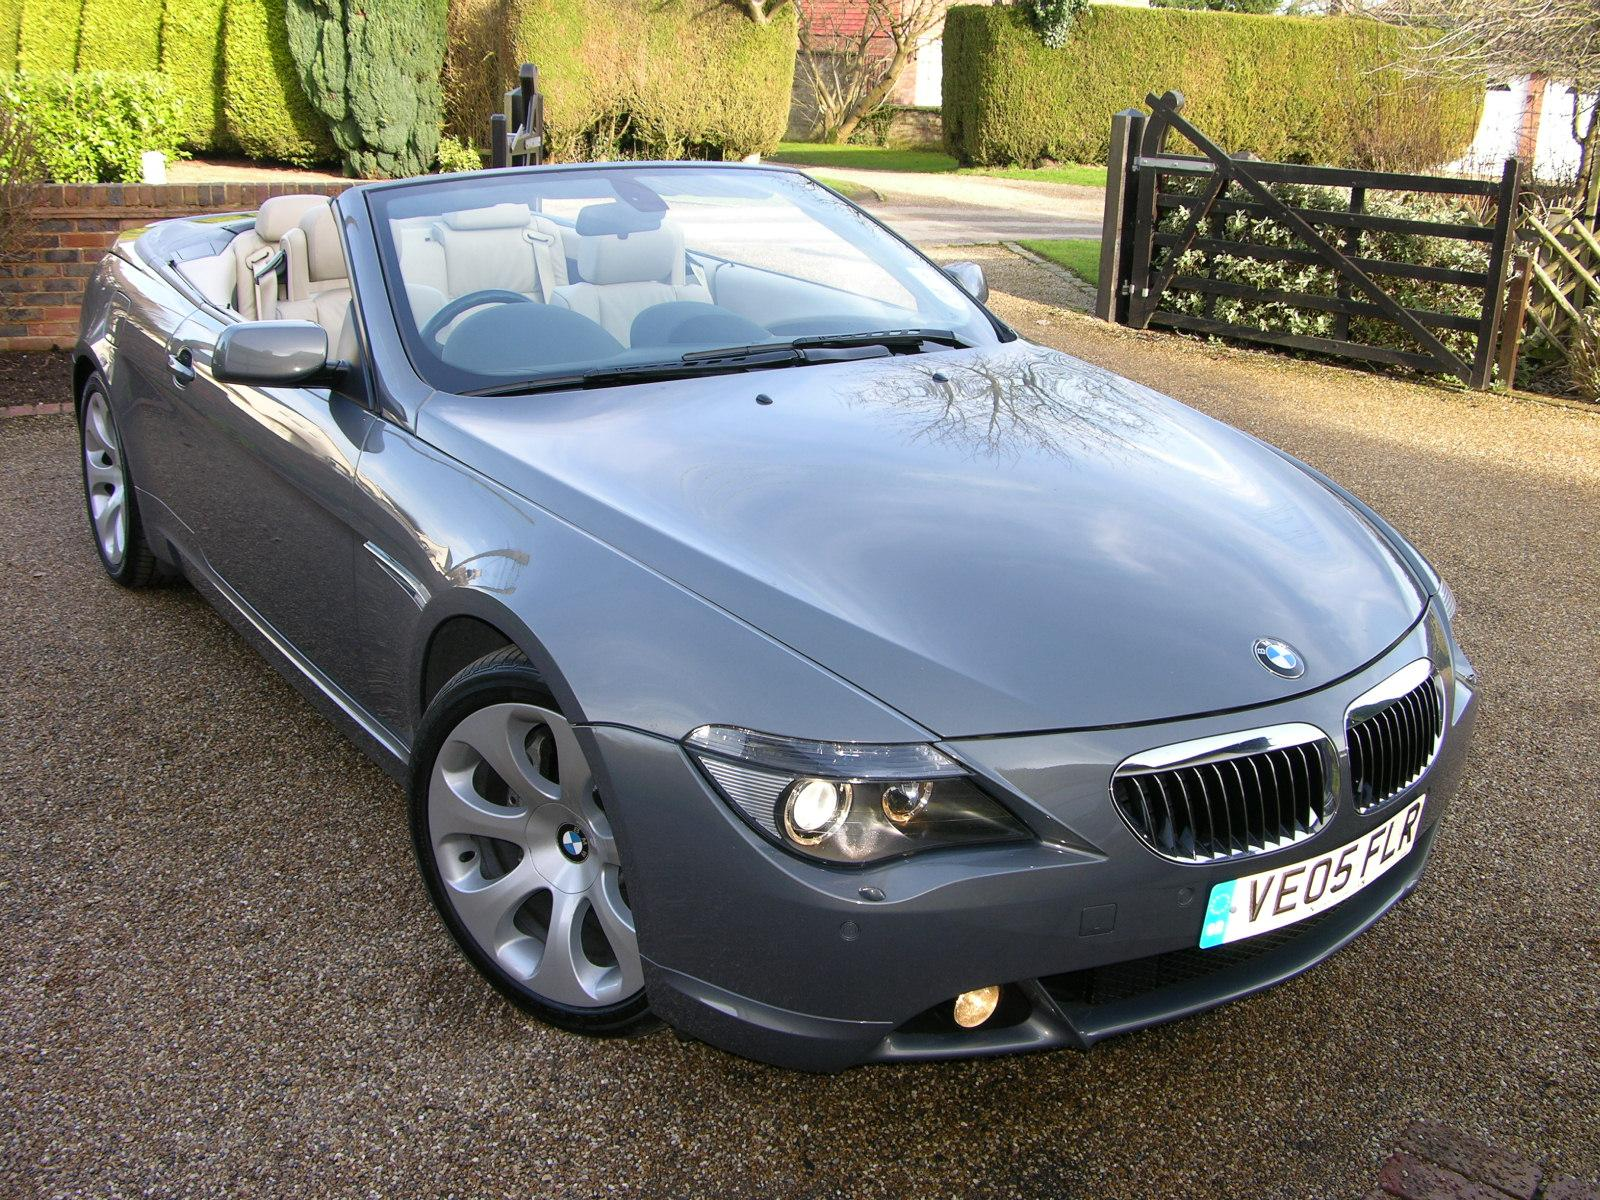 file 2005 bmw 645ci cabriolet flickr the car spy 24 jpg wikimedia commons. Black Bedroom Furniture Sets. Home Design Ideas